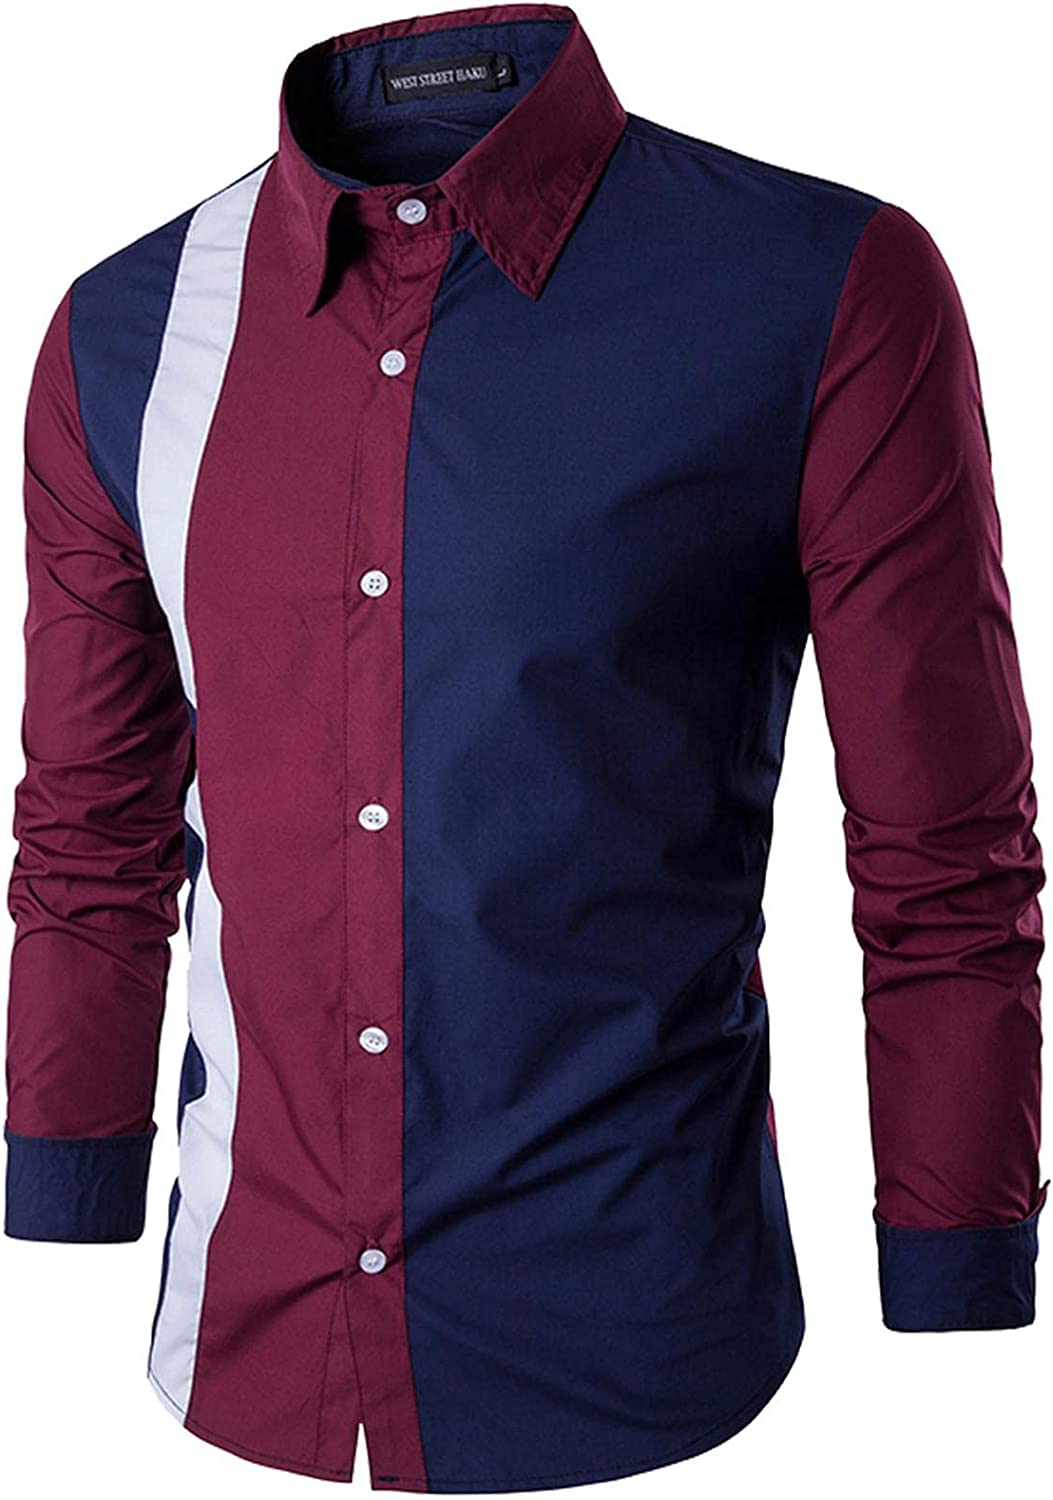 FUNEY Mens Button Down Long Sleeve Shirts Casual Slim Fit Solid Turndown Collar Fashion Patchwork Formal Dress Work Shirt